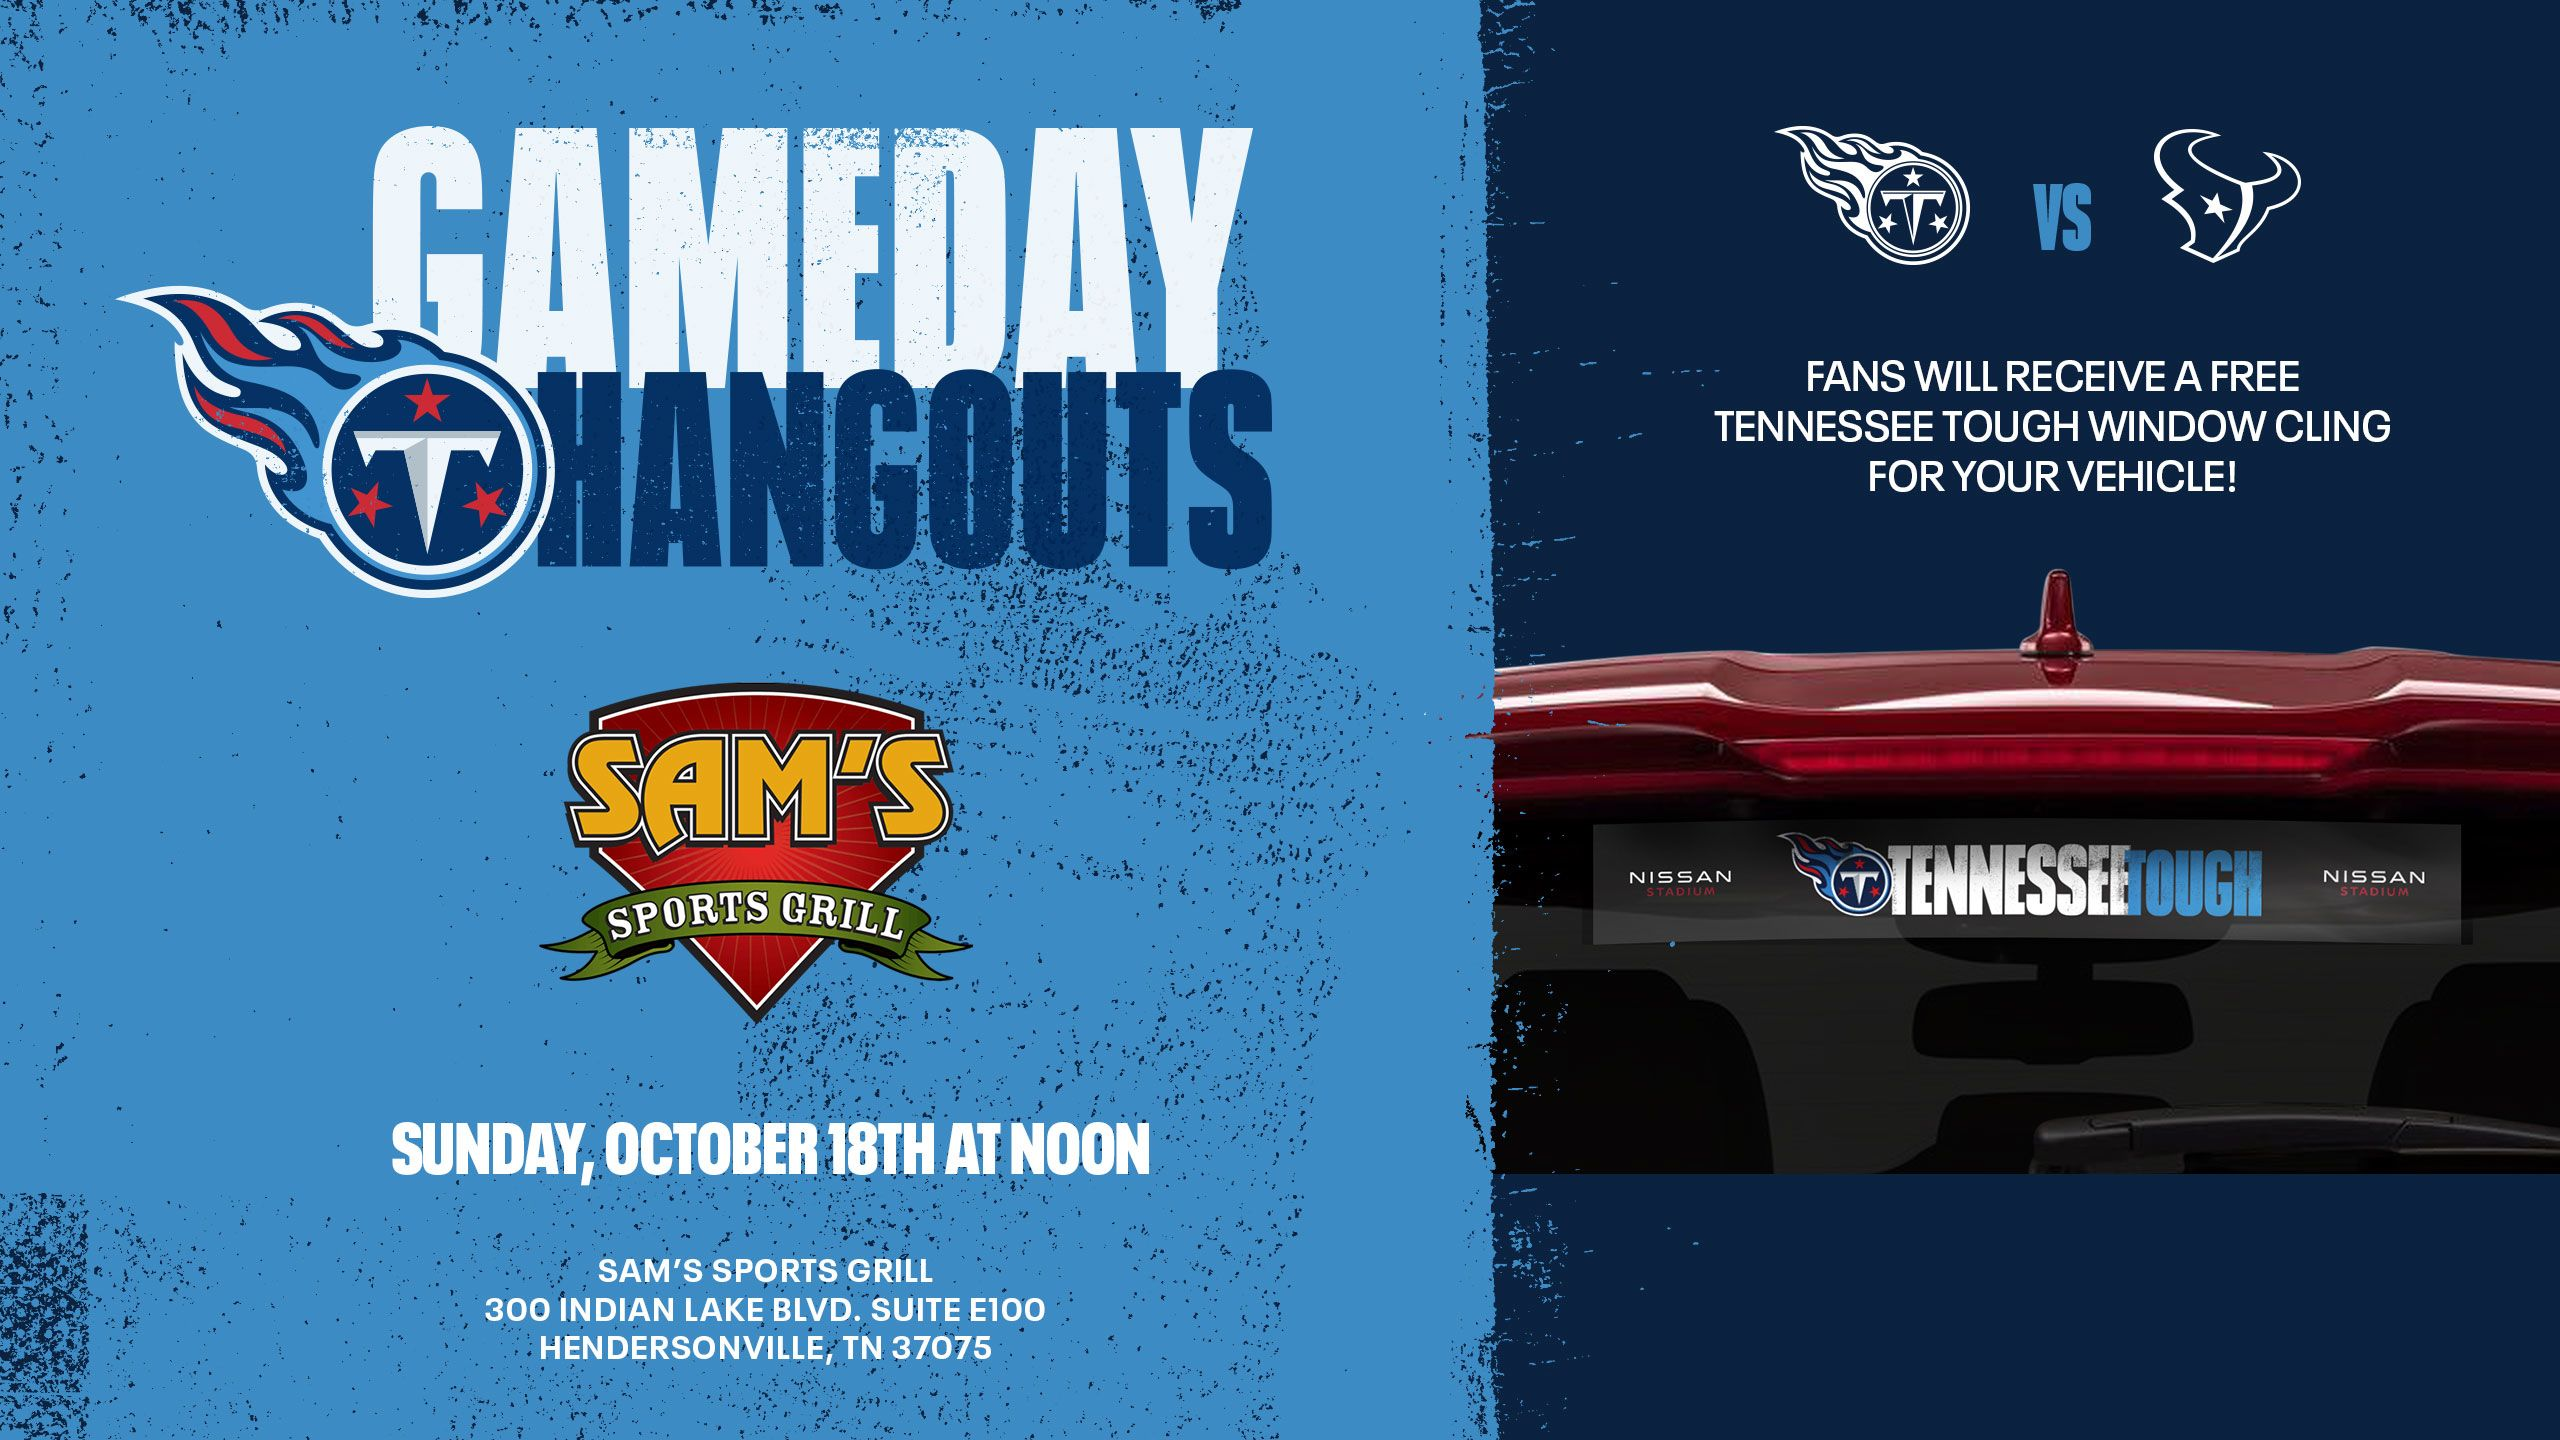 Featured Gameday Hangout for Titans vs Texans - Sunday, Oct. 18